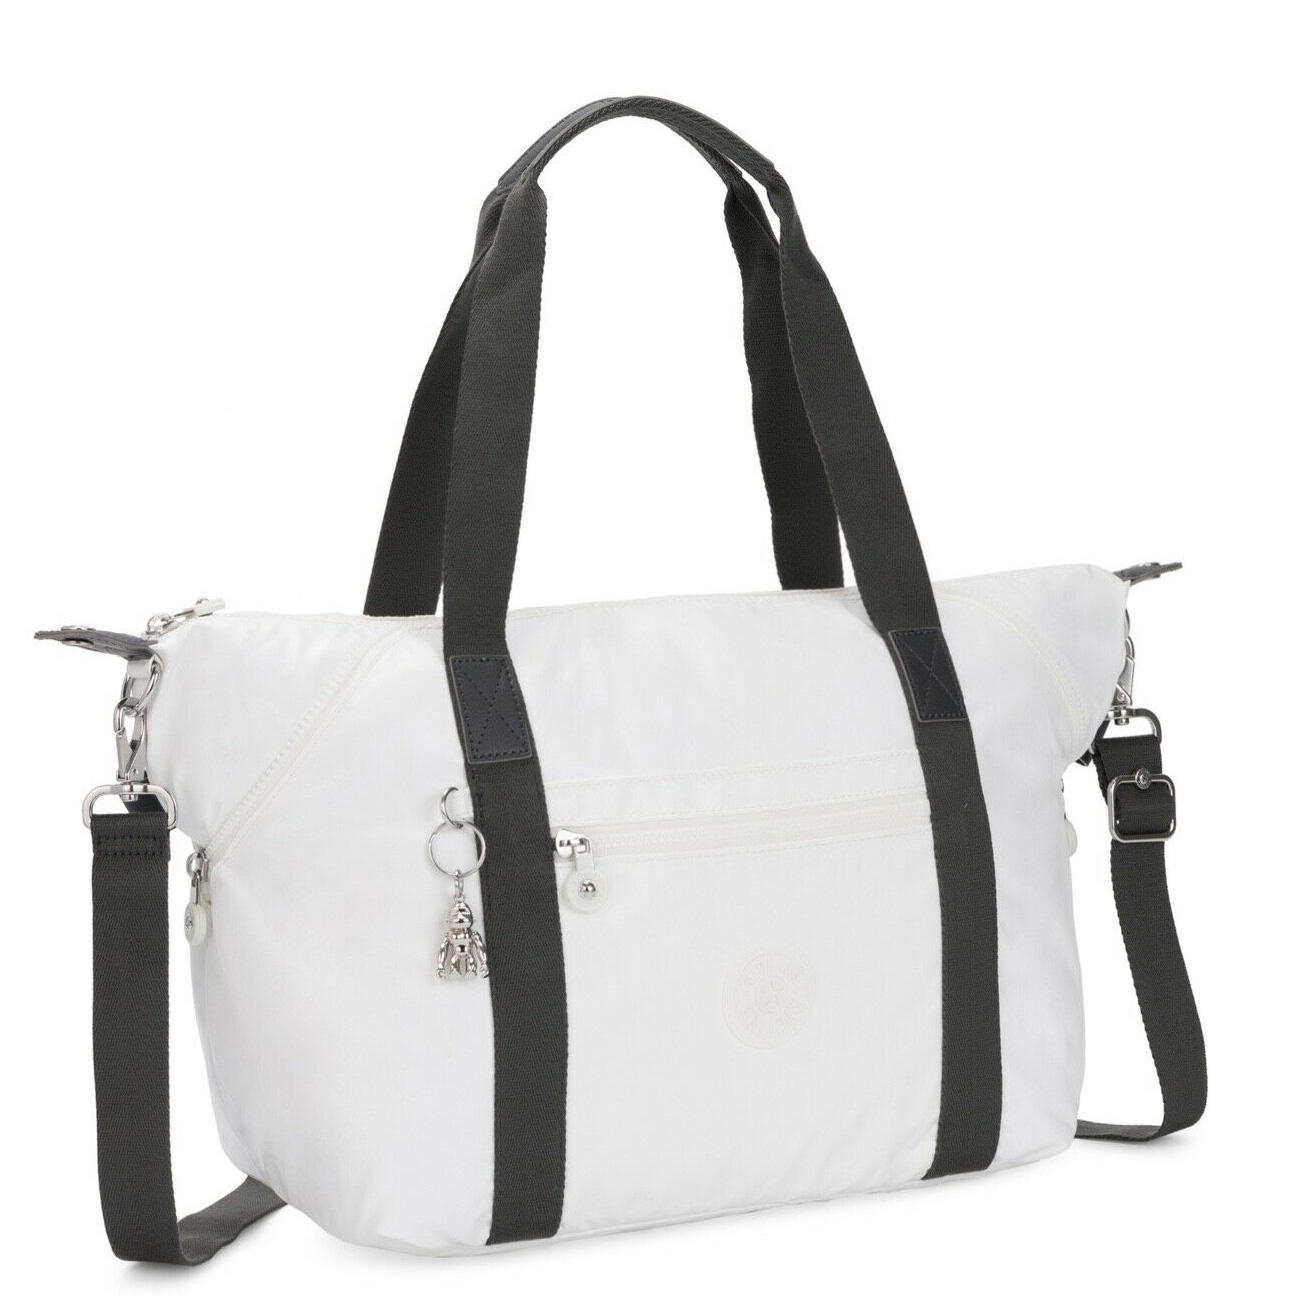 Women's Bags - Art Shoulder bag, with shoulder strap